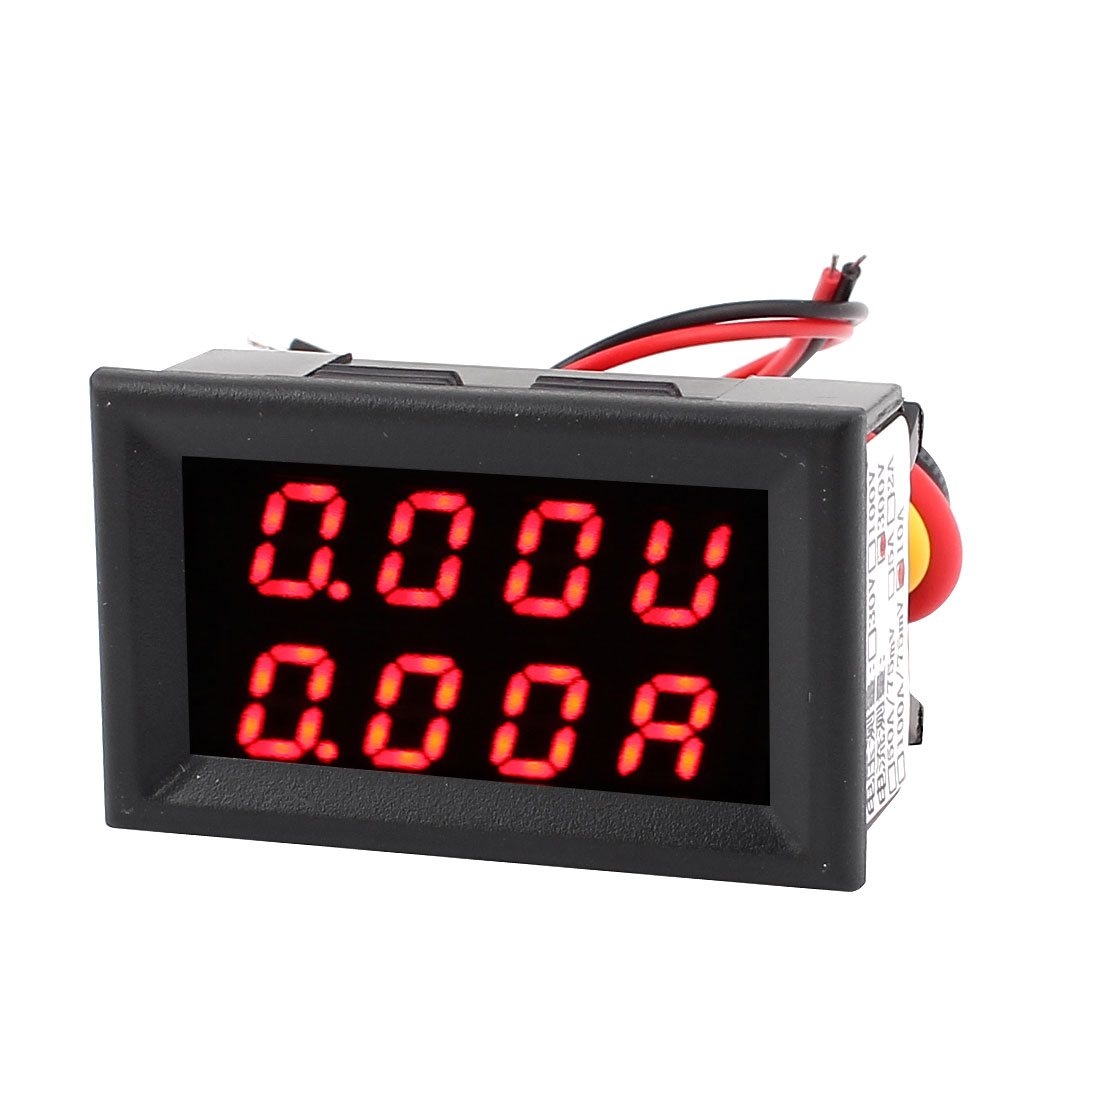 DC 0-300V 0-10A Dual LED Digital Mobile Battery Monitor Voltage Current Meter